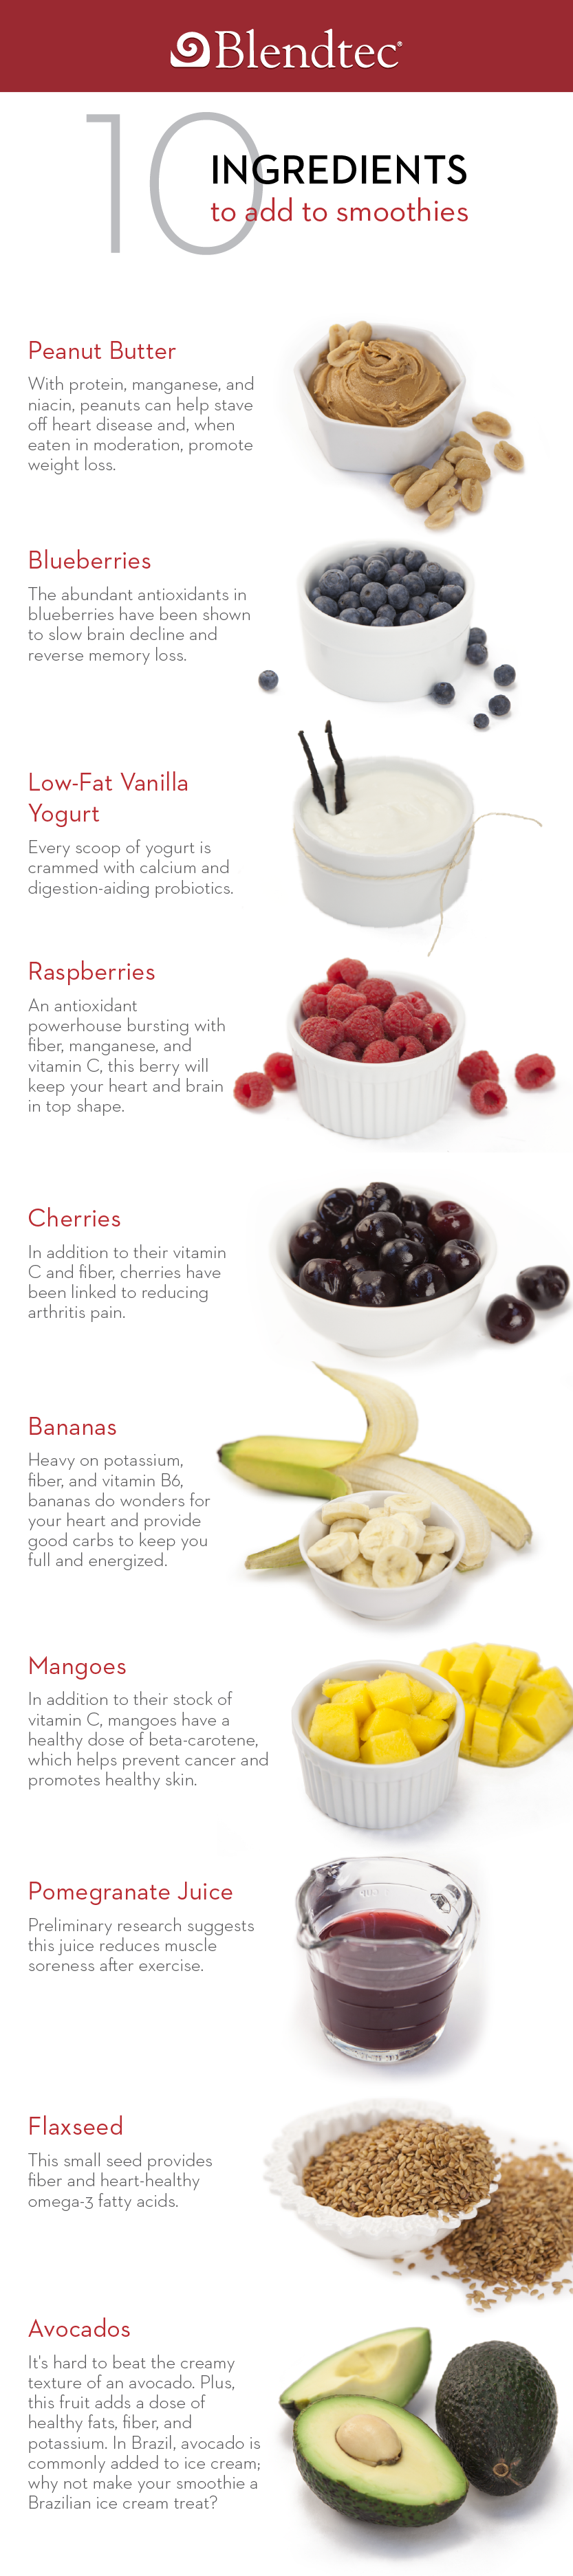 10 Ingredients For Your Smoothies